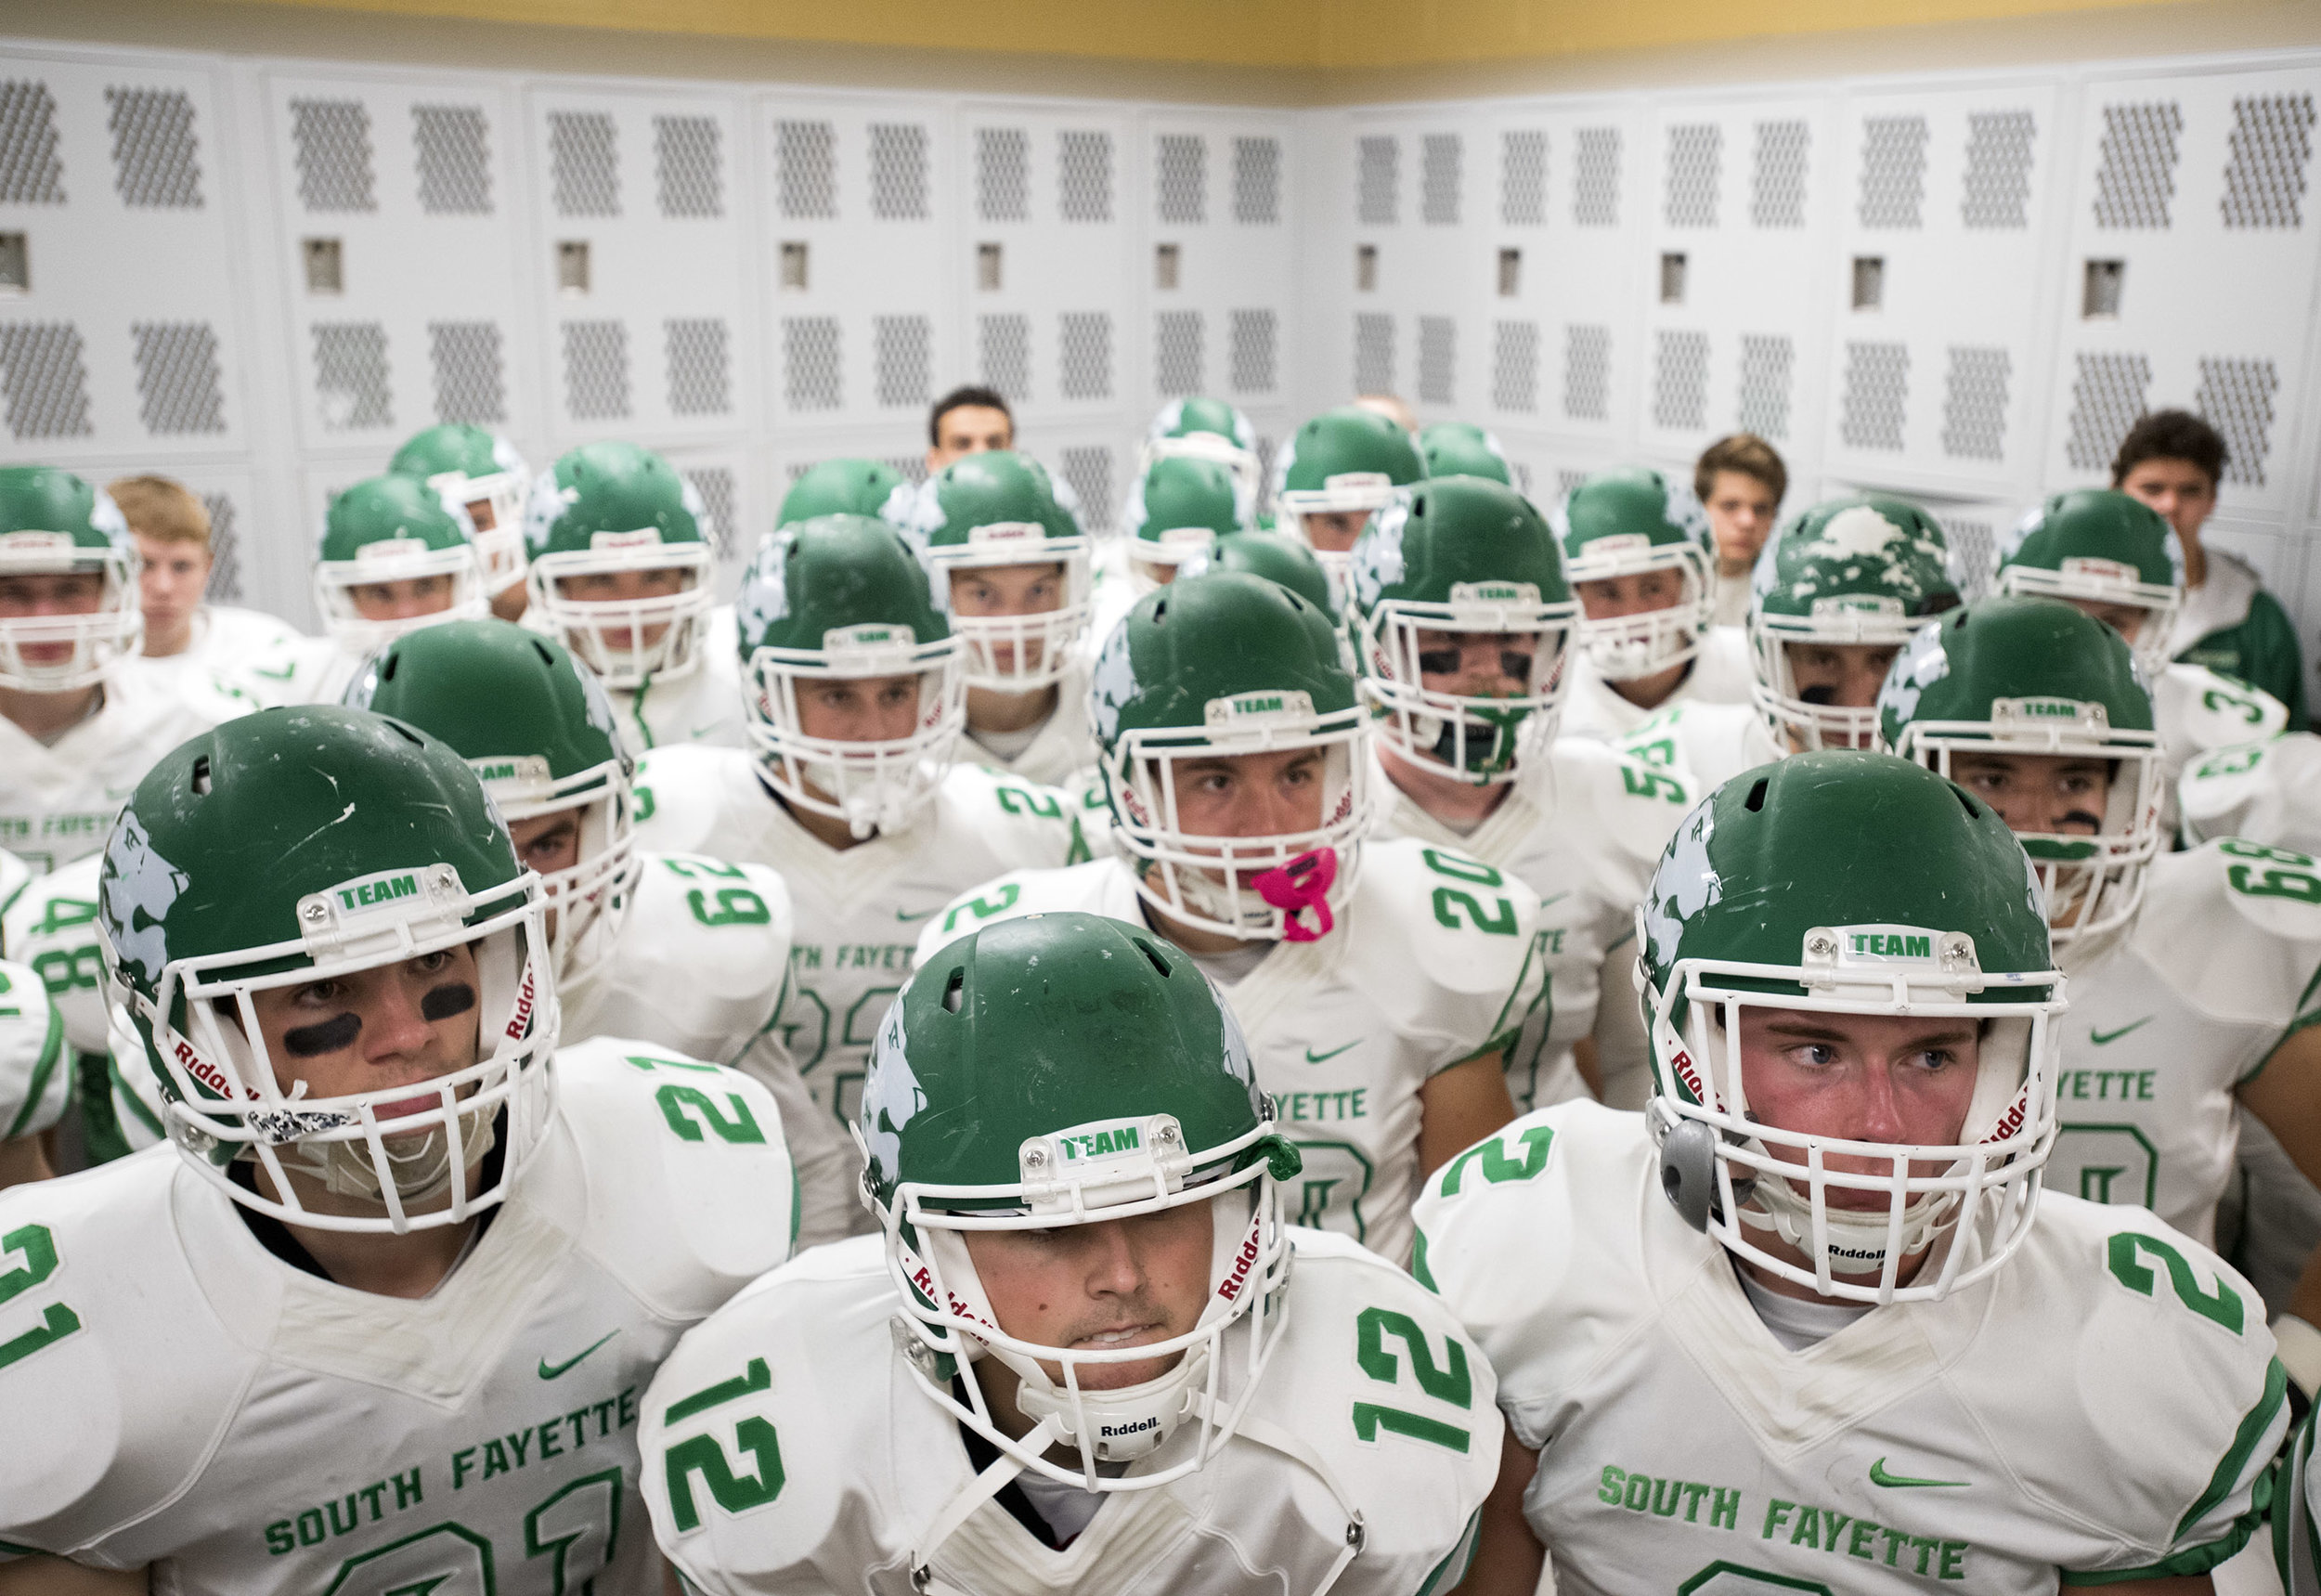 South Fayette listens to their coaches in the locker room before playing Montour during a football game on Friday, Oct. 27, 2017 at Montour High School. South Fayette beat Montour 49-21. (Steph Chambers/Post-Gazette)